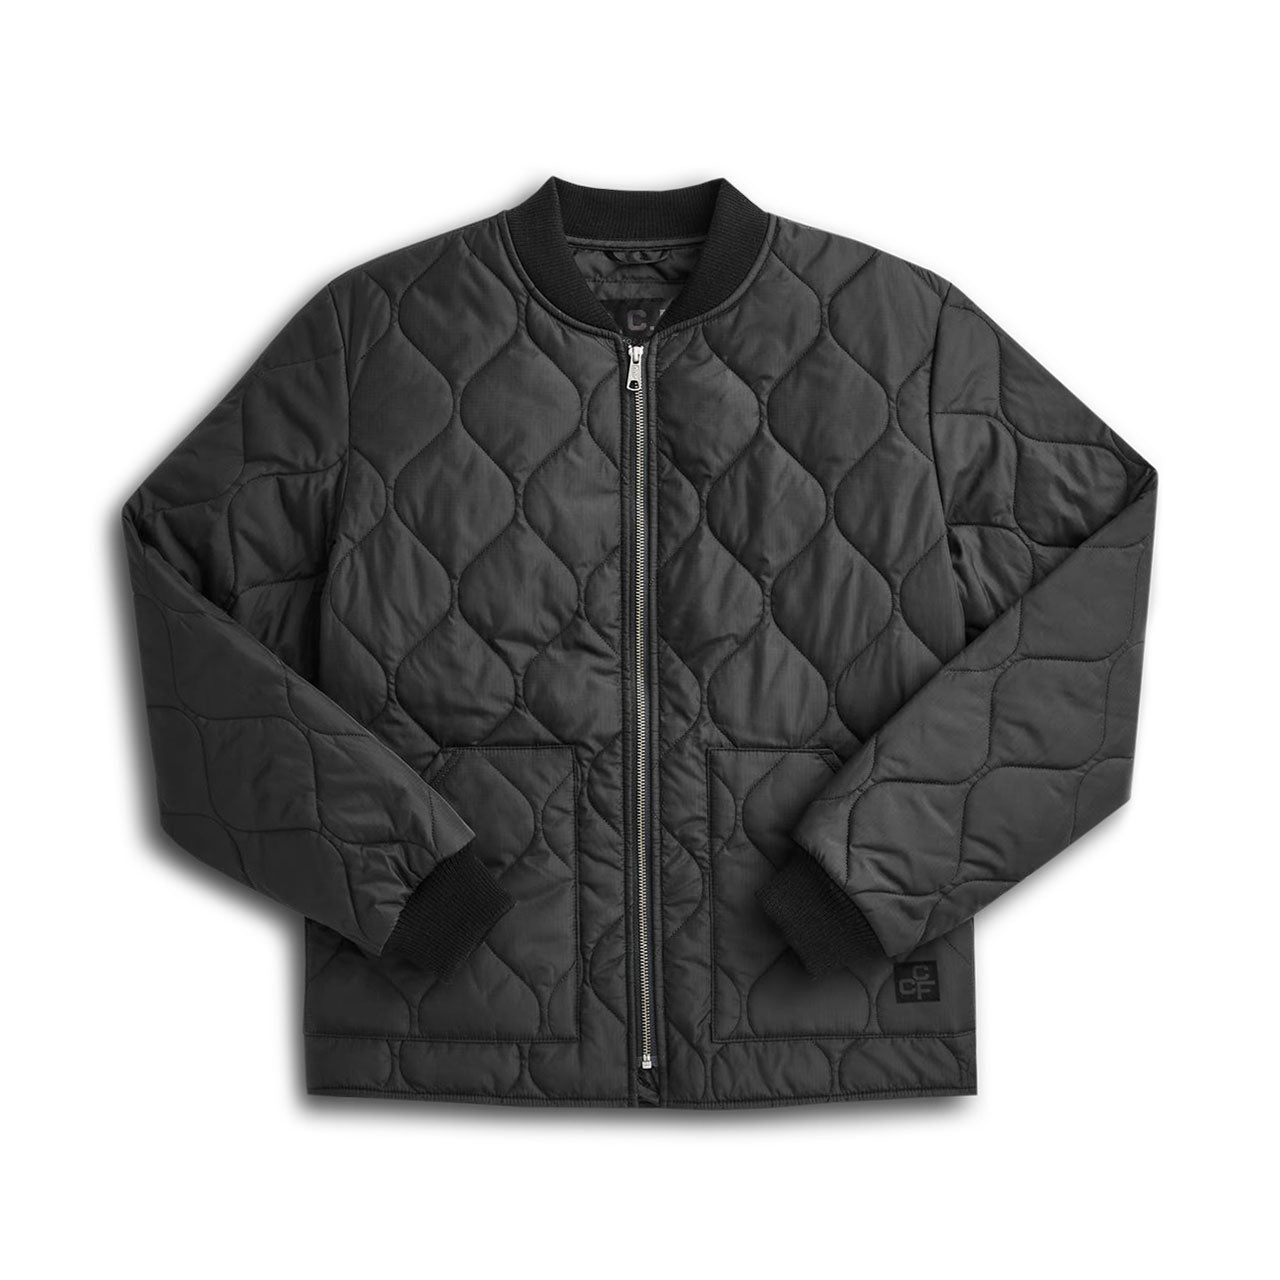 Filson Lightweight Quilted Utility Jacket